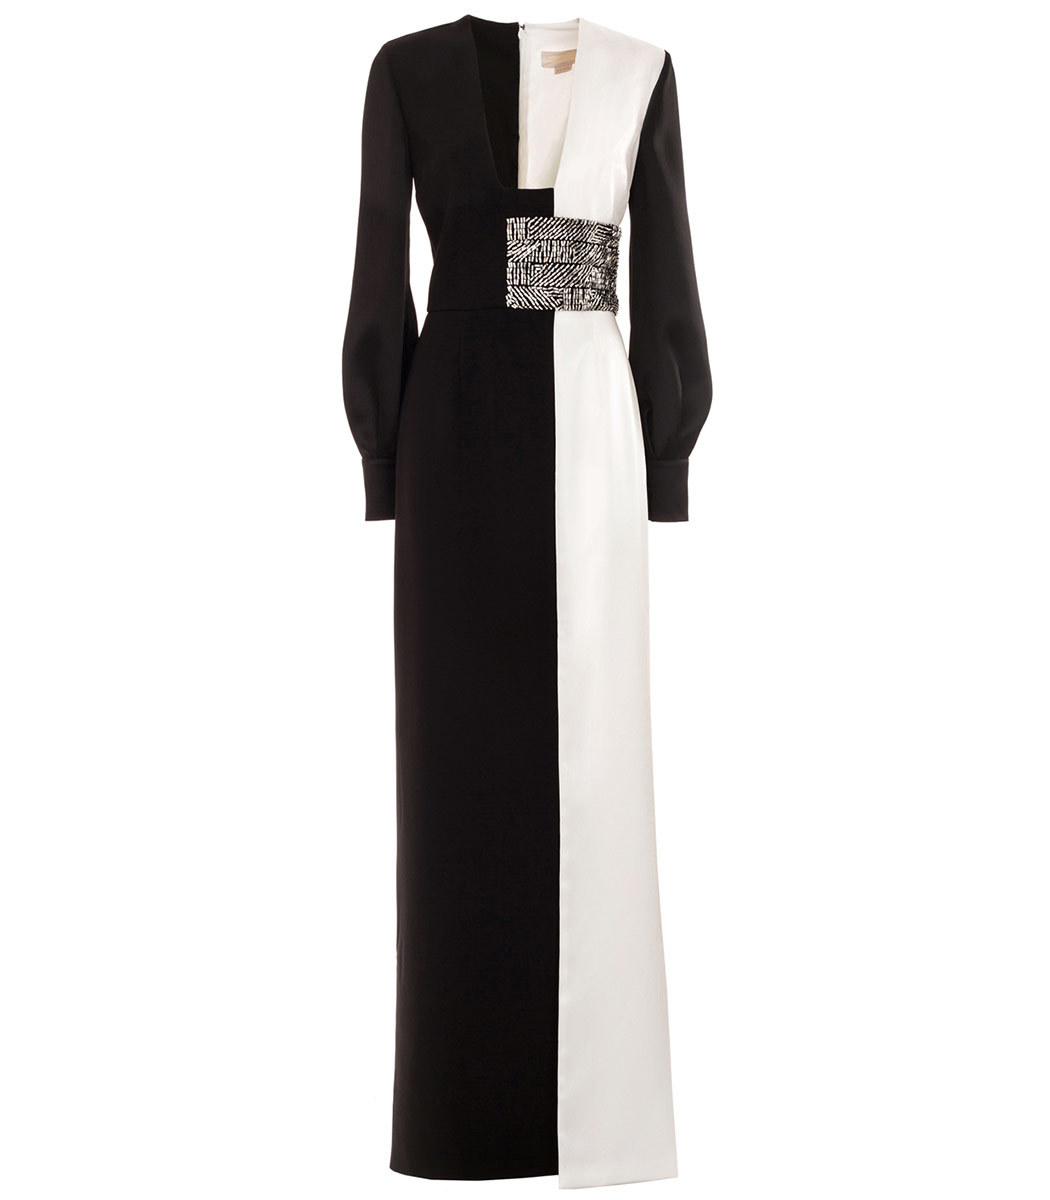 Genny Black and White Floor Length Gown - ShopBAZAAR